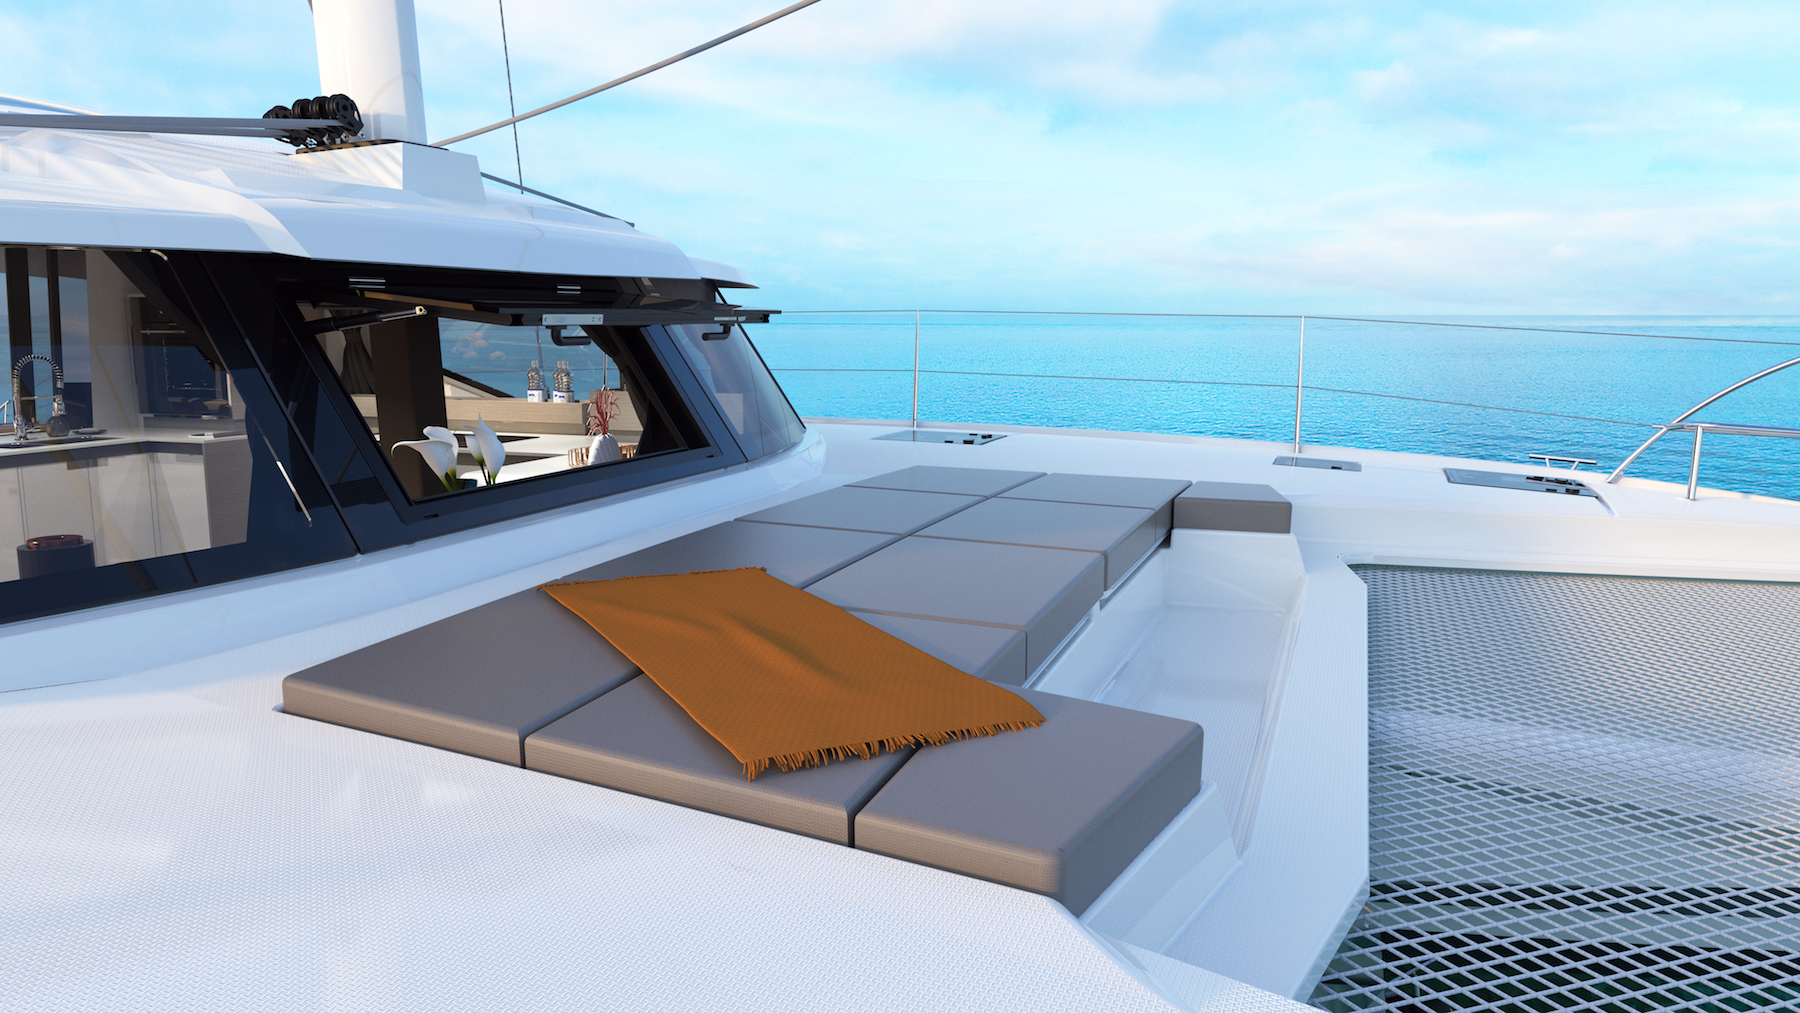 Fountaine Pajot New 45 Catamaran For Sale: Denison Yachting